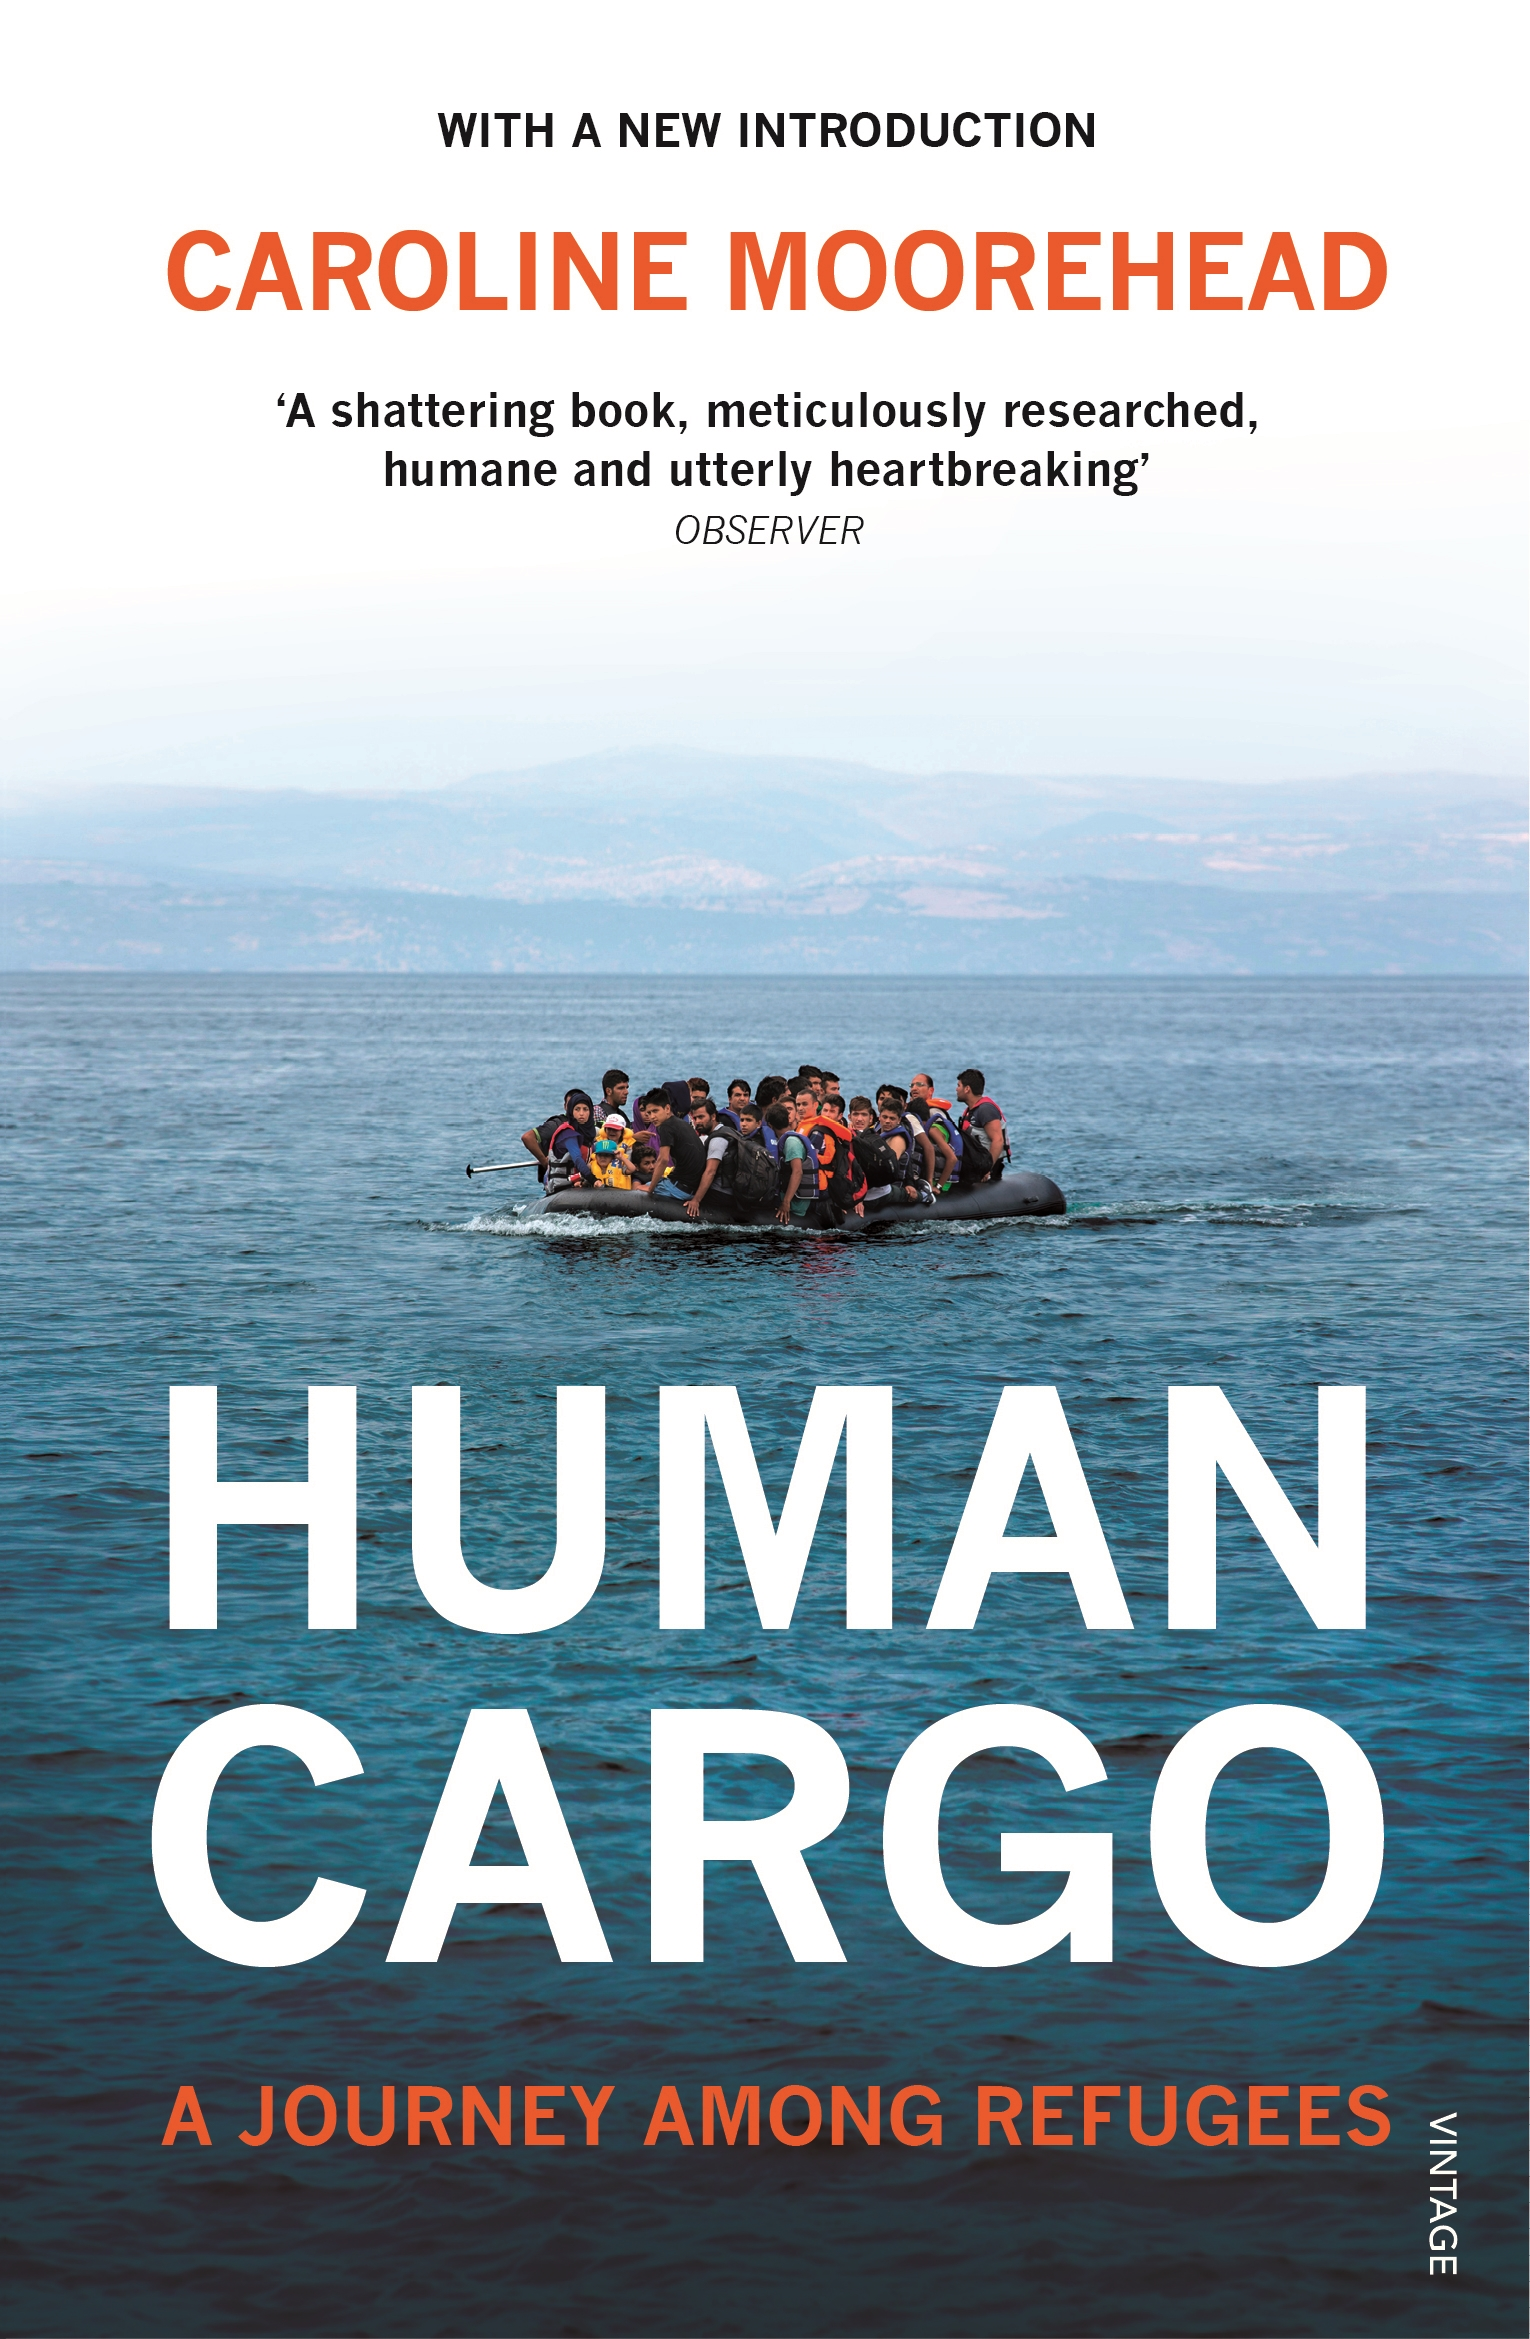 Human Cargo - Written in three sections (leaving, arriving and afterwards), Caroline Moorehead writes about asylum seekers in a range of locations including Afghanistan, America, Australia, Egypt, Lebanon, Britain and Sicily. The one thing that unites all these places is the effort that governments expend in order to keep people out. Although it is now a dated book, reading it is very informative and well worth the effort.